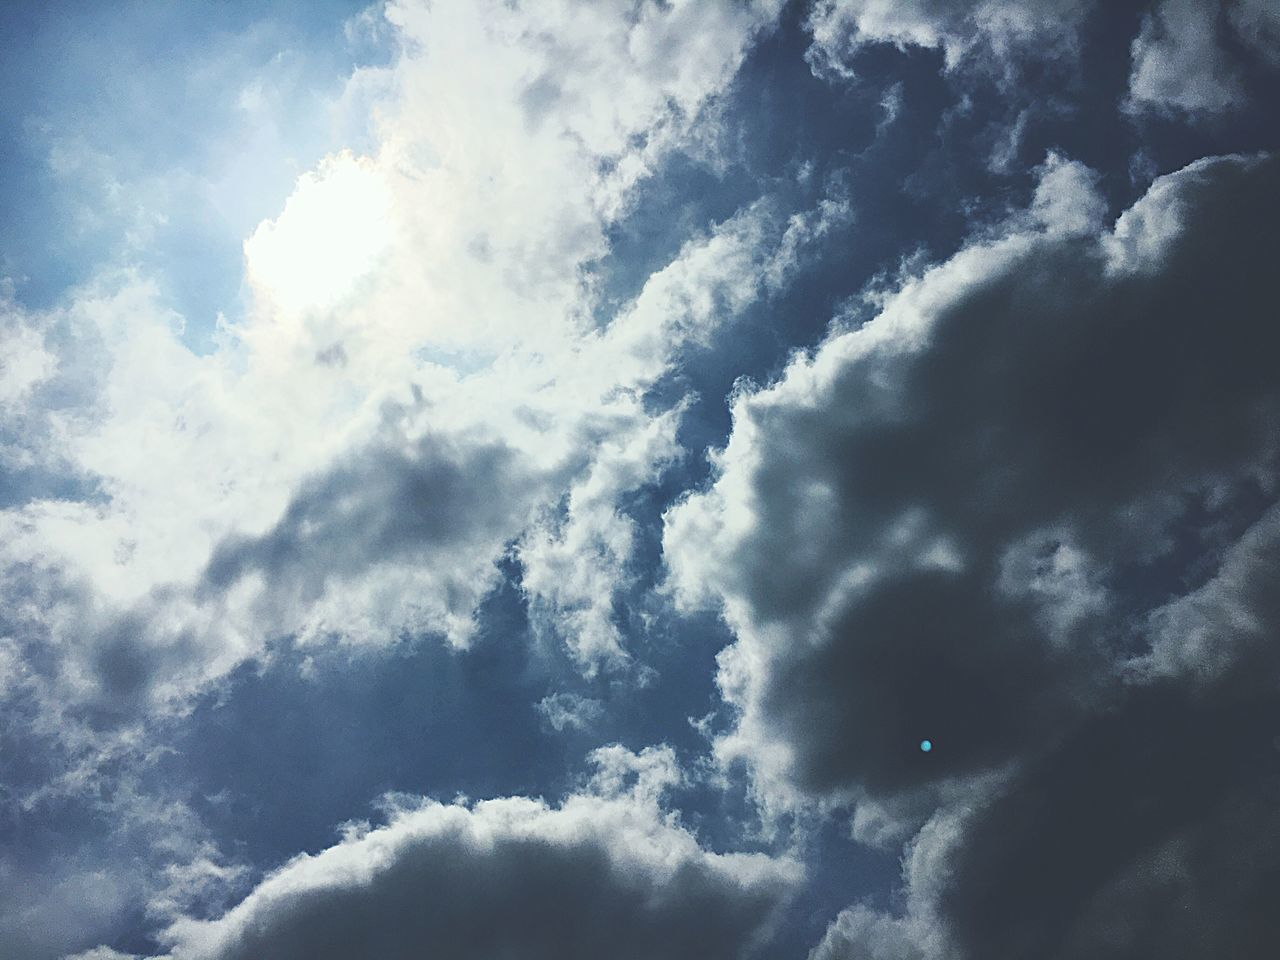 Cloudy Sunlight Afternoon Blinding Sunlight Sunnyday☀️ Outdoors Beauty In Nature Scenics Cloud - Sky Vibrant Light Sky No People